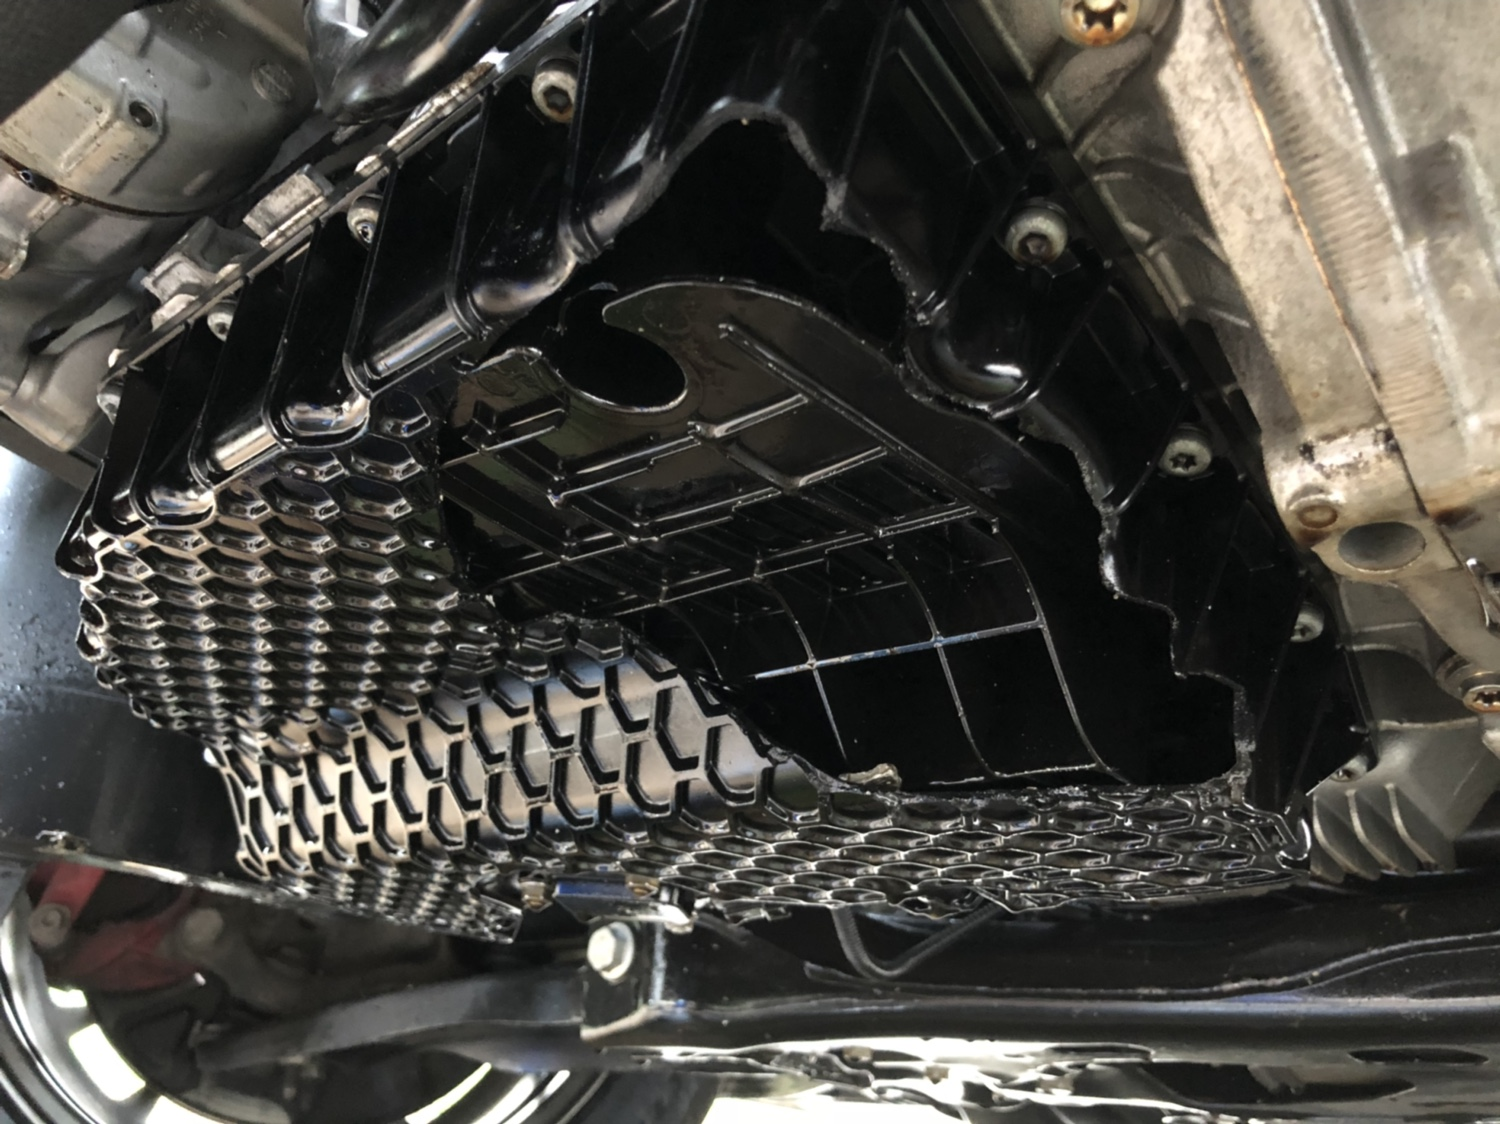 Stealthy is38 install - Page 30 - GOLFMK7 - VW GTI MKVII Forum / VW